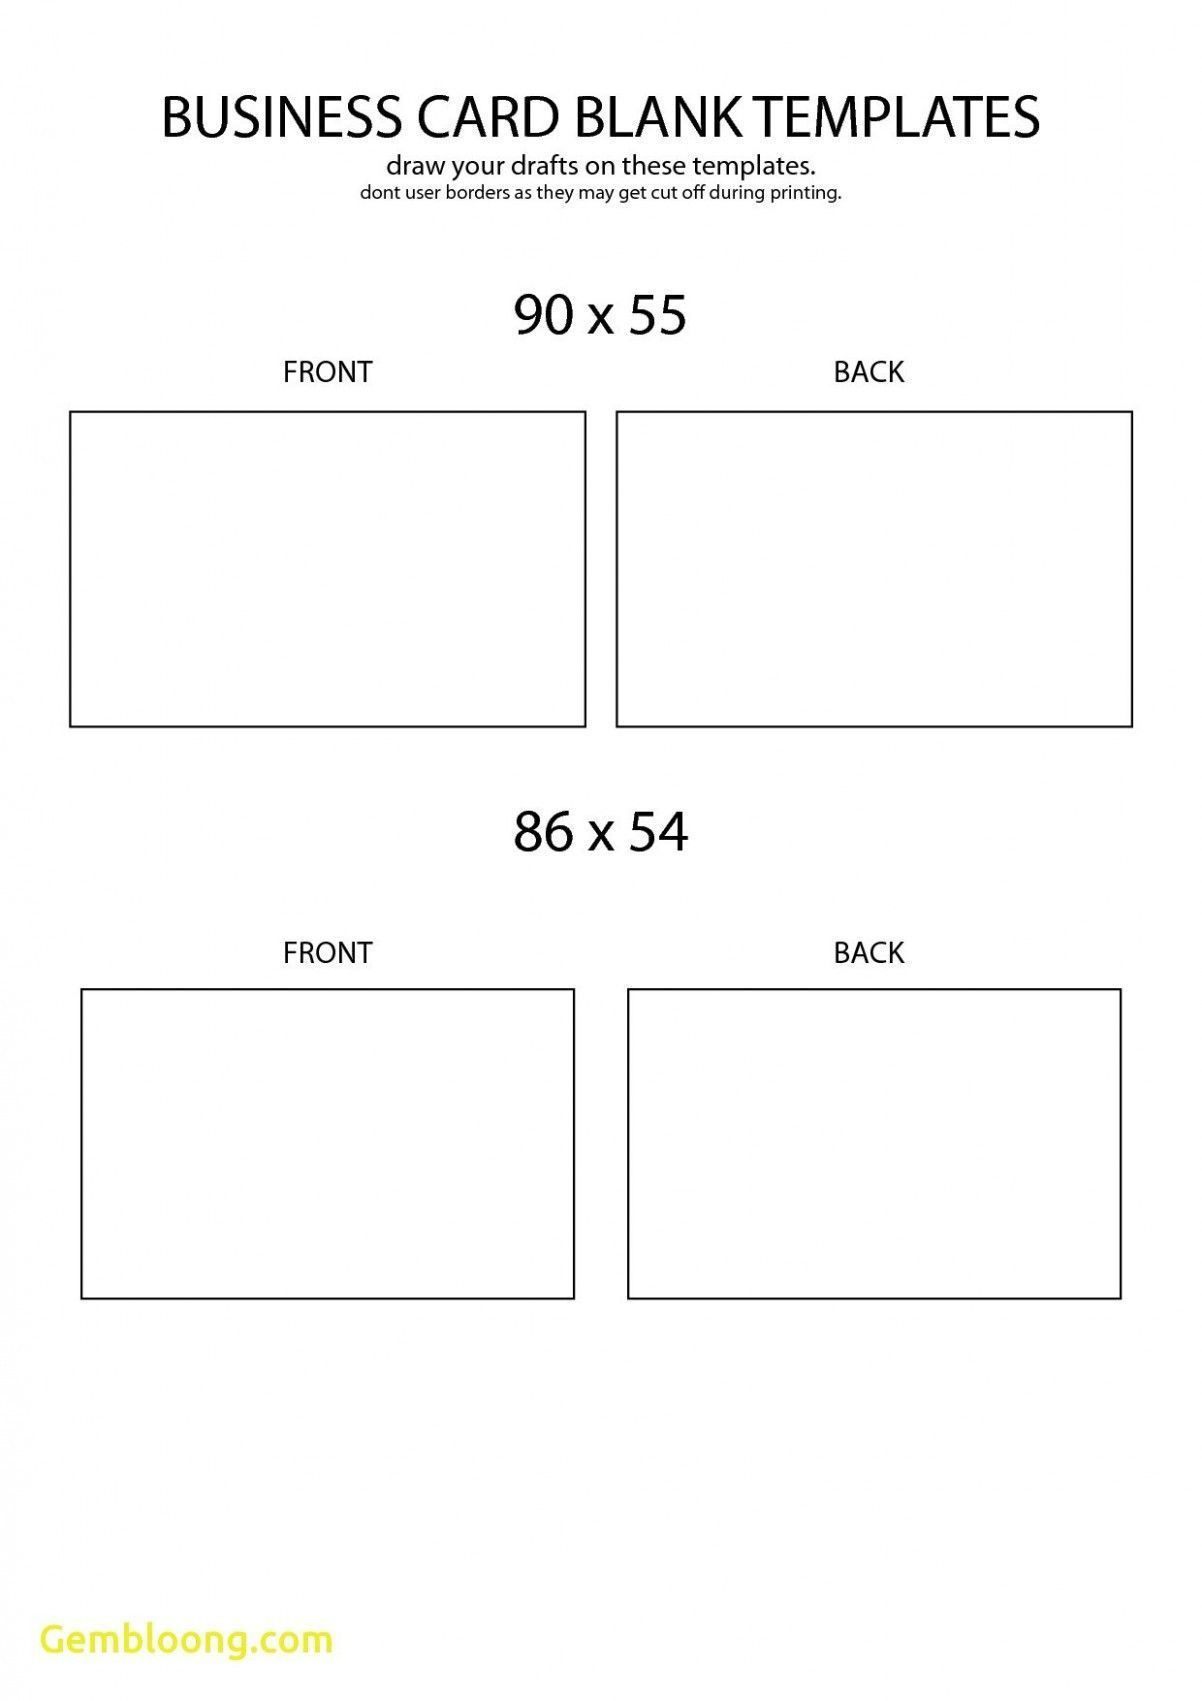 000 Unforgettable Free Printable Busines Template High Def  Templates Card For Google Doc Budget Microsoft WordFull